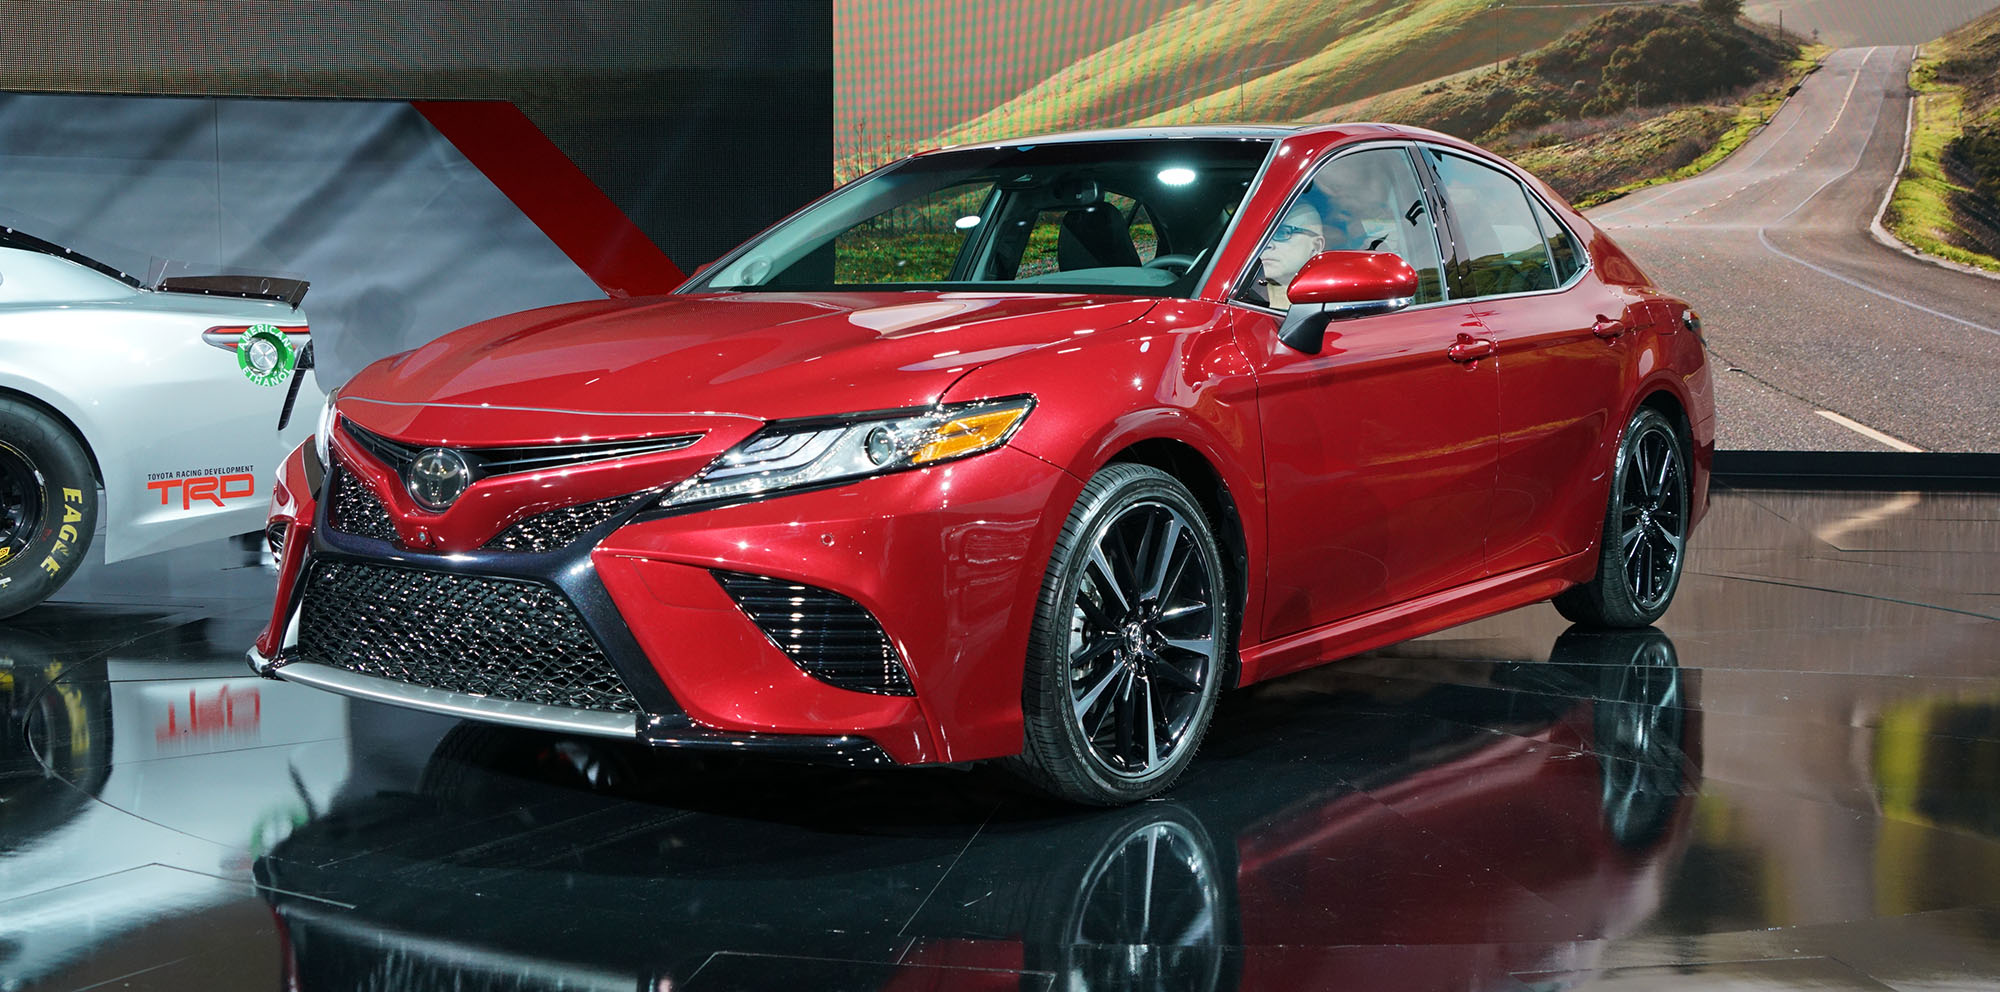 toyota new camry 2018. beautiful new 2018 toyota camry revealed japanbuilt sedan in australia from late 2017 with toyota new camry 0